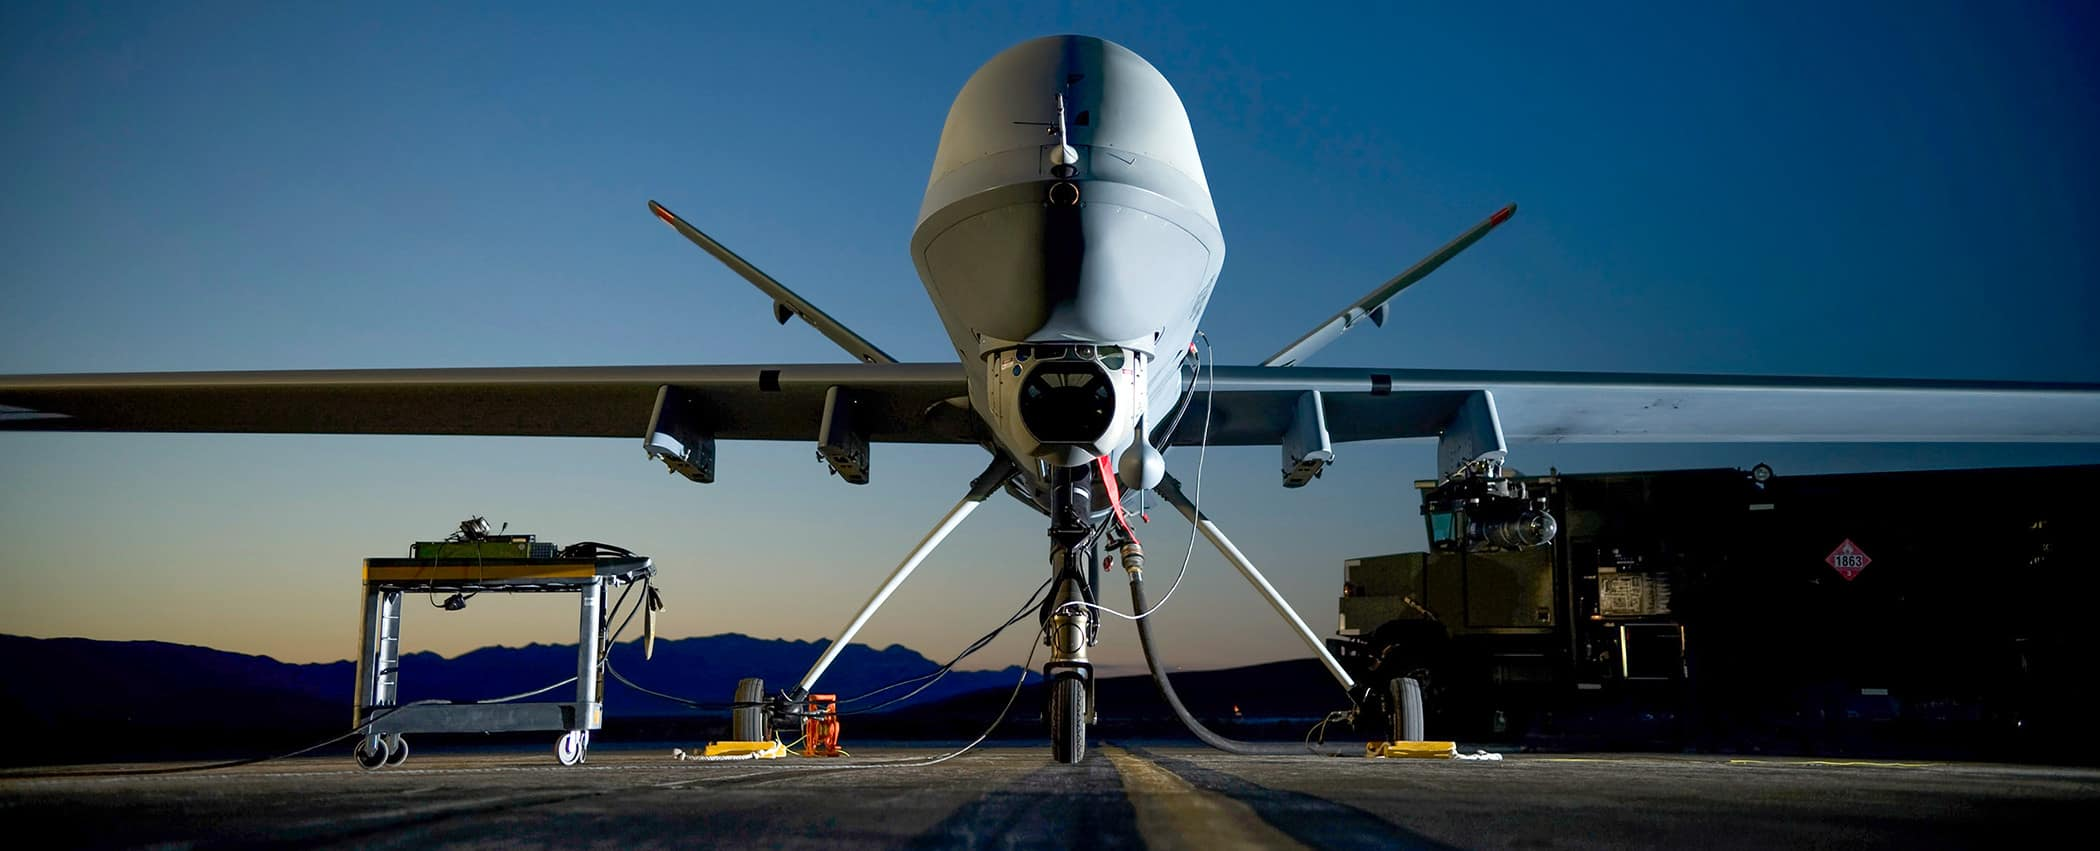 The Master of Science in Unmanned Systems at Embry-Riddle Aeronautical University – Worldwide examines the application, development and management of unmanned systems and addresses issues including regulation; systems design; policy and ethics; education and training; and human performance and machine interaction.